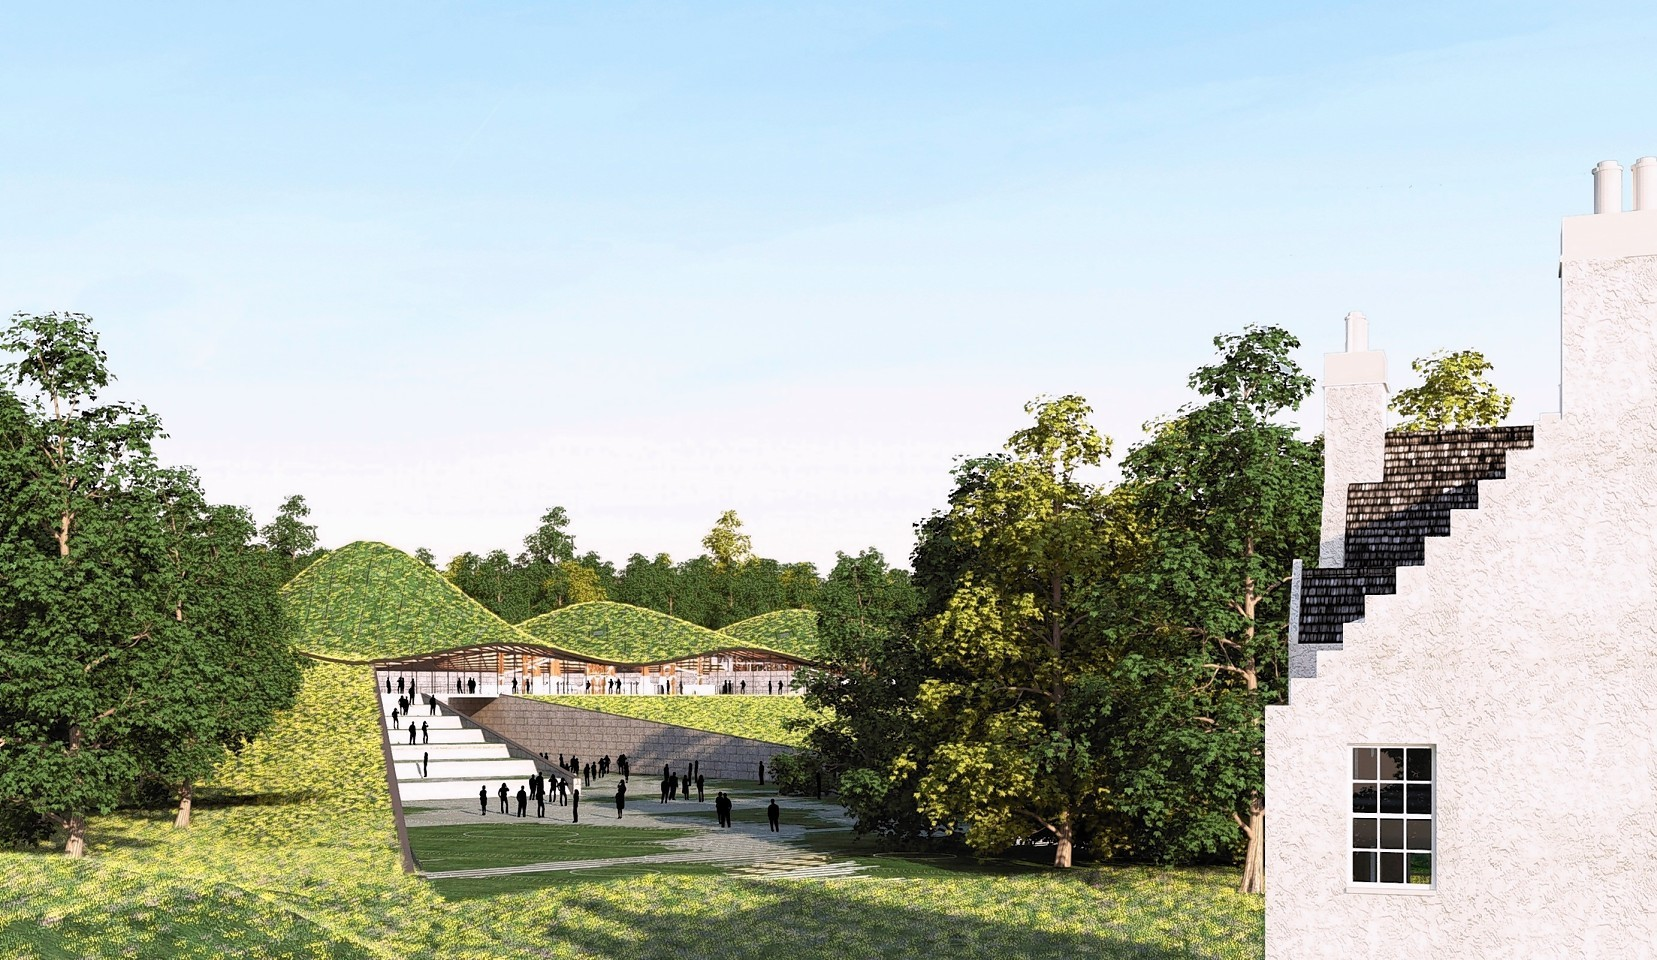 An artist's impression of how The Macallan distillery will look